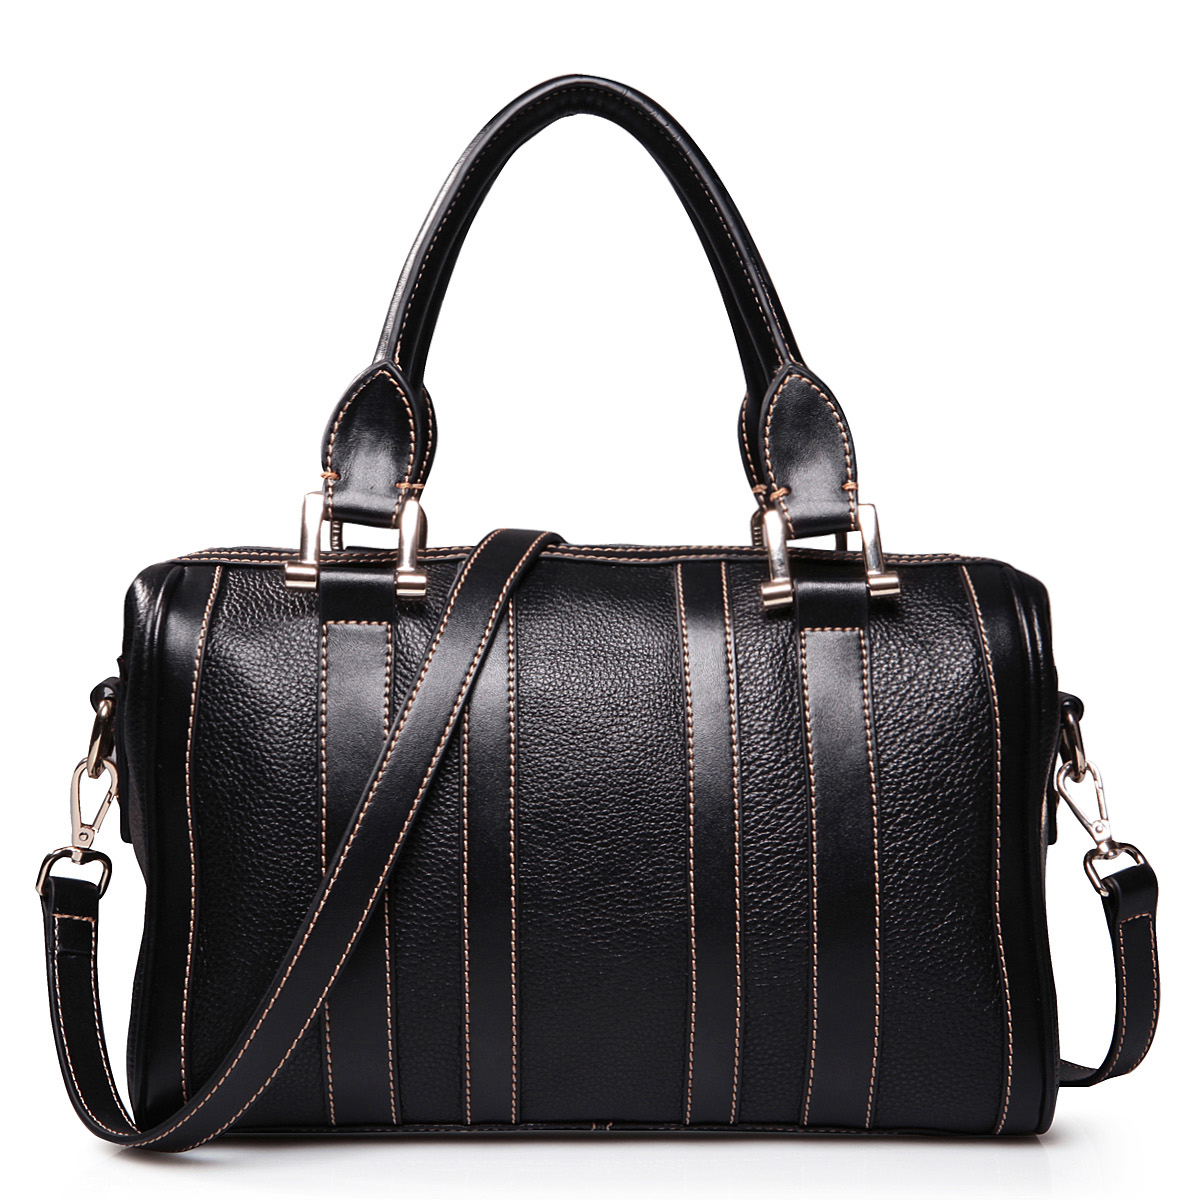 Home > Women s Bags > Hobo Bags > Cowhide lady handbags black